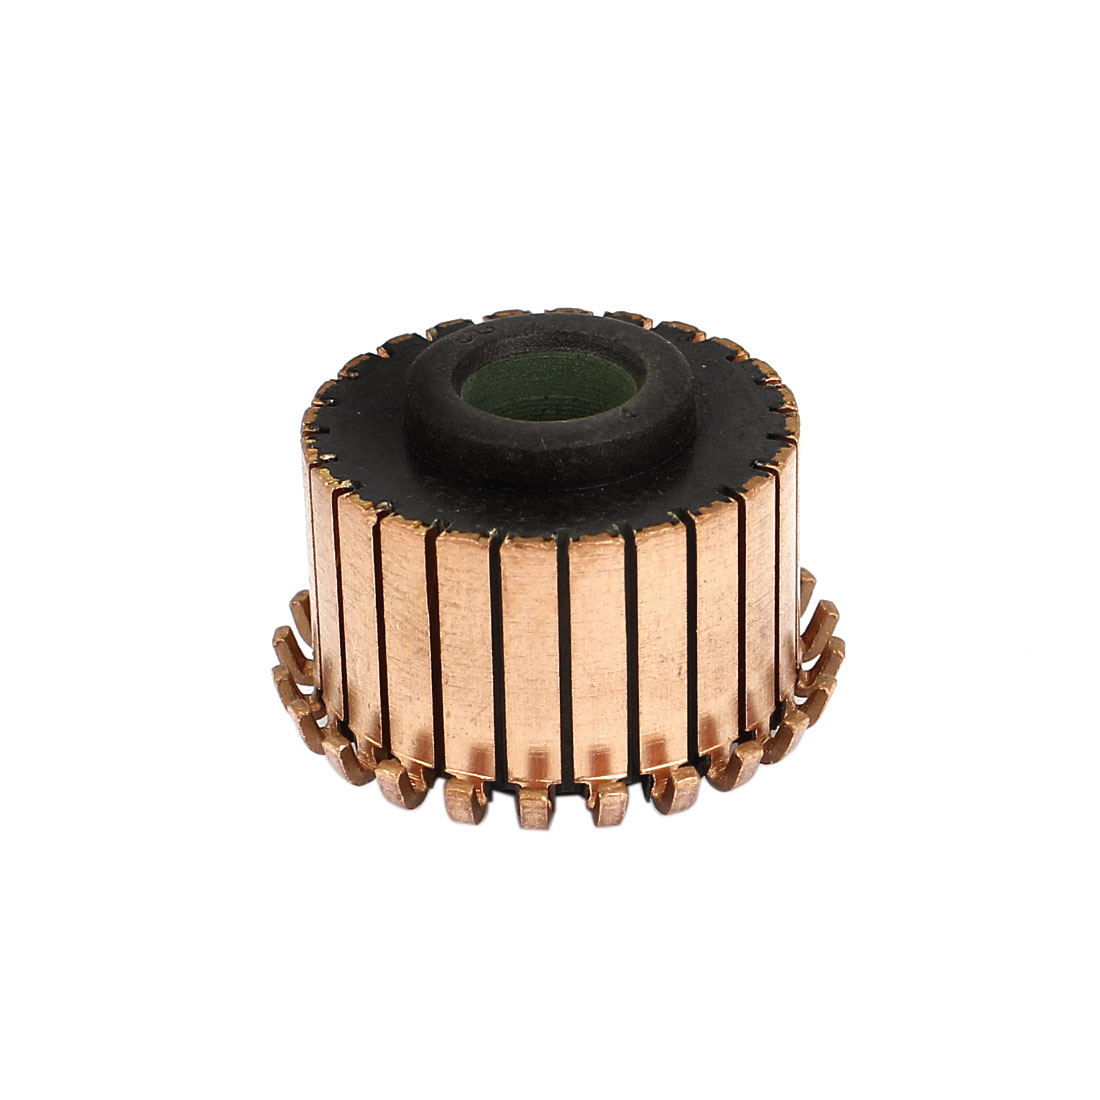 8mm x 23.2mm x 18.8mm 24P Copper Bars Alternator Electric Motor Commutator